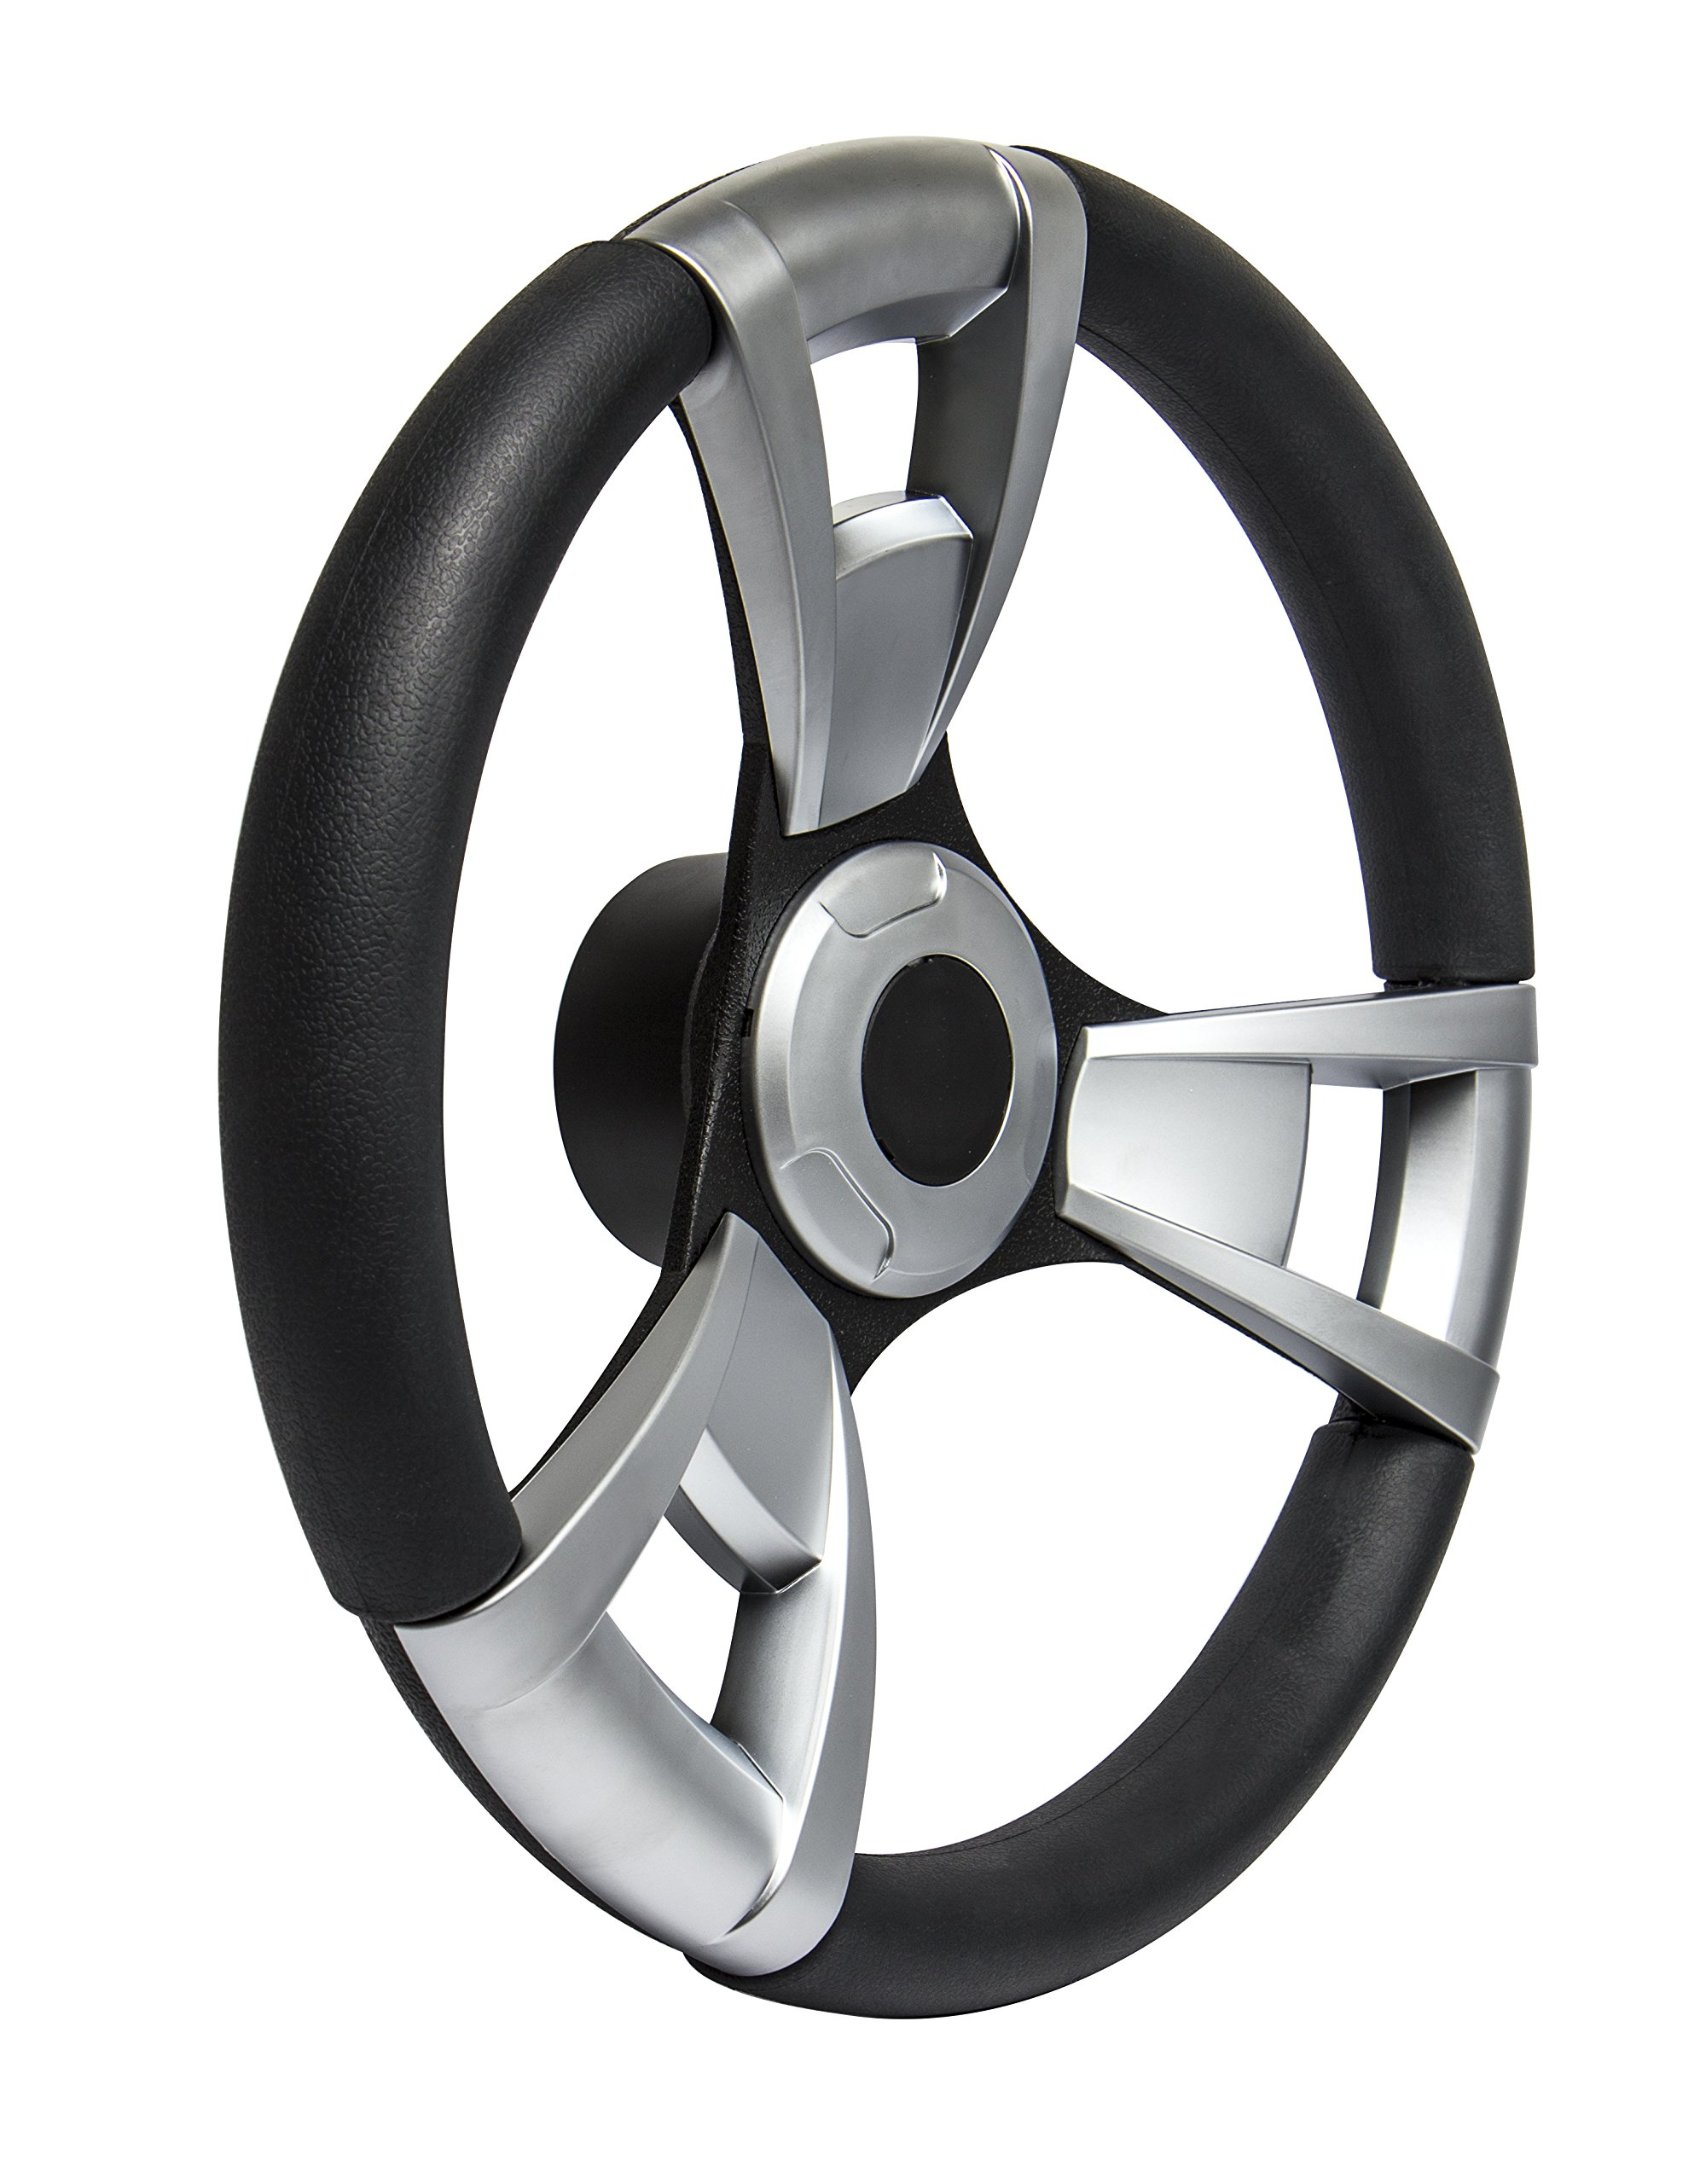 SeaStar Navigator SW60100P Steering Wheel, Navigator 13-1/2 inch, Brushed Inserts, 3 Spoke Equidistant by Dometic SeaStar